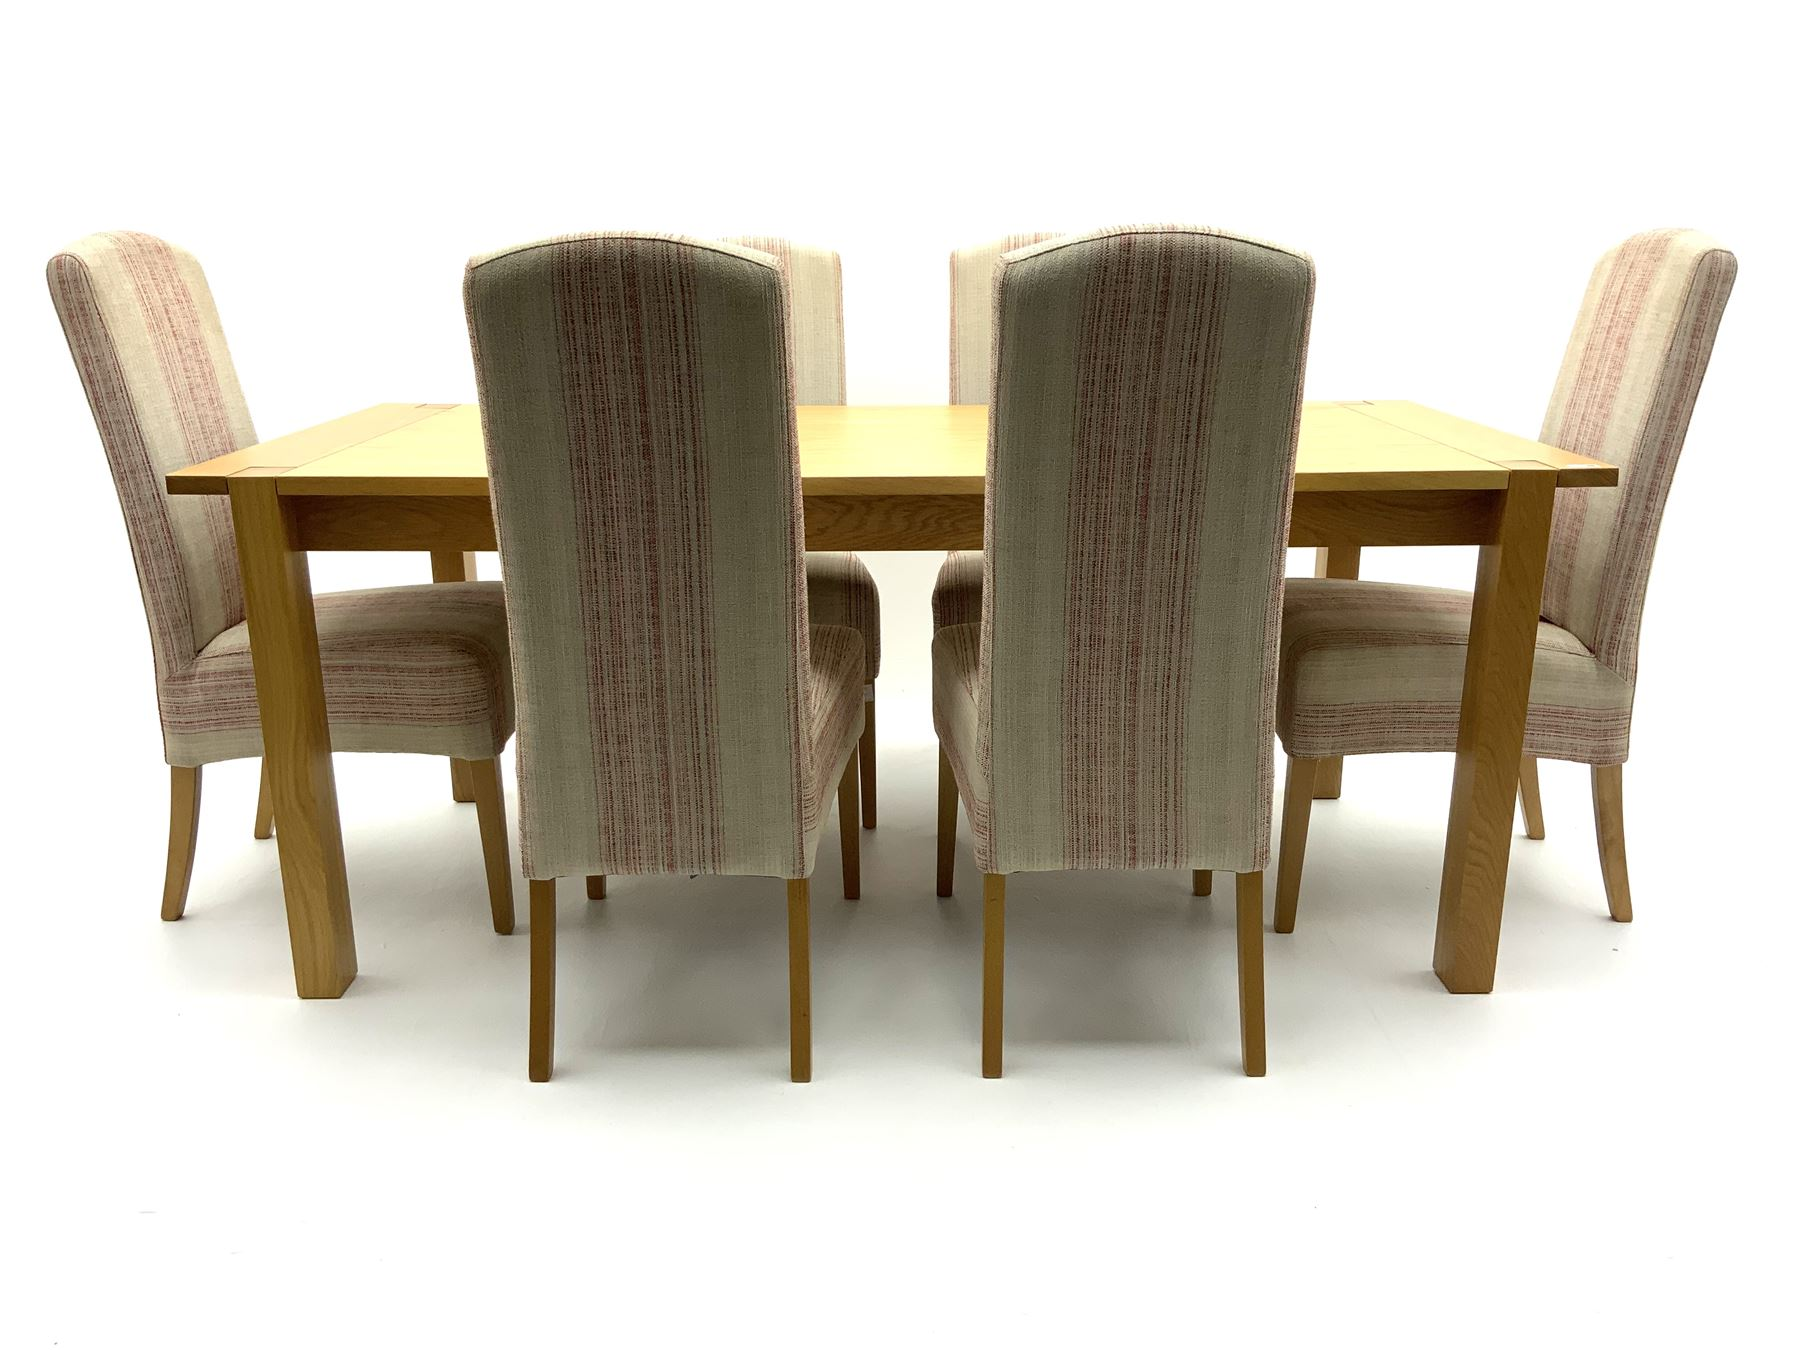 Marks & Spencer Home Sonama light oak extending dining table with leaf and six high back chairs with - Image 3 of 3